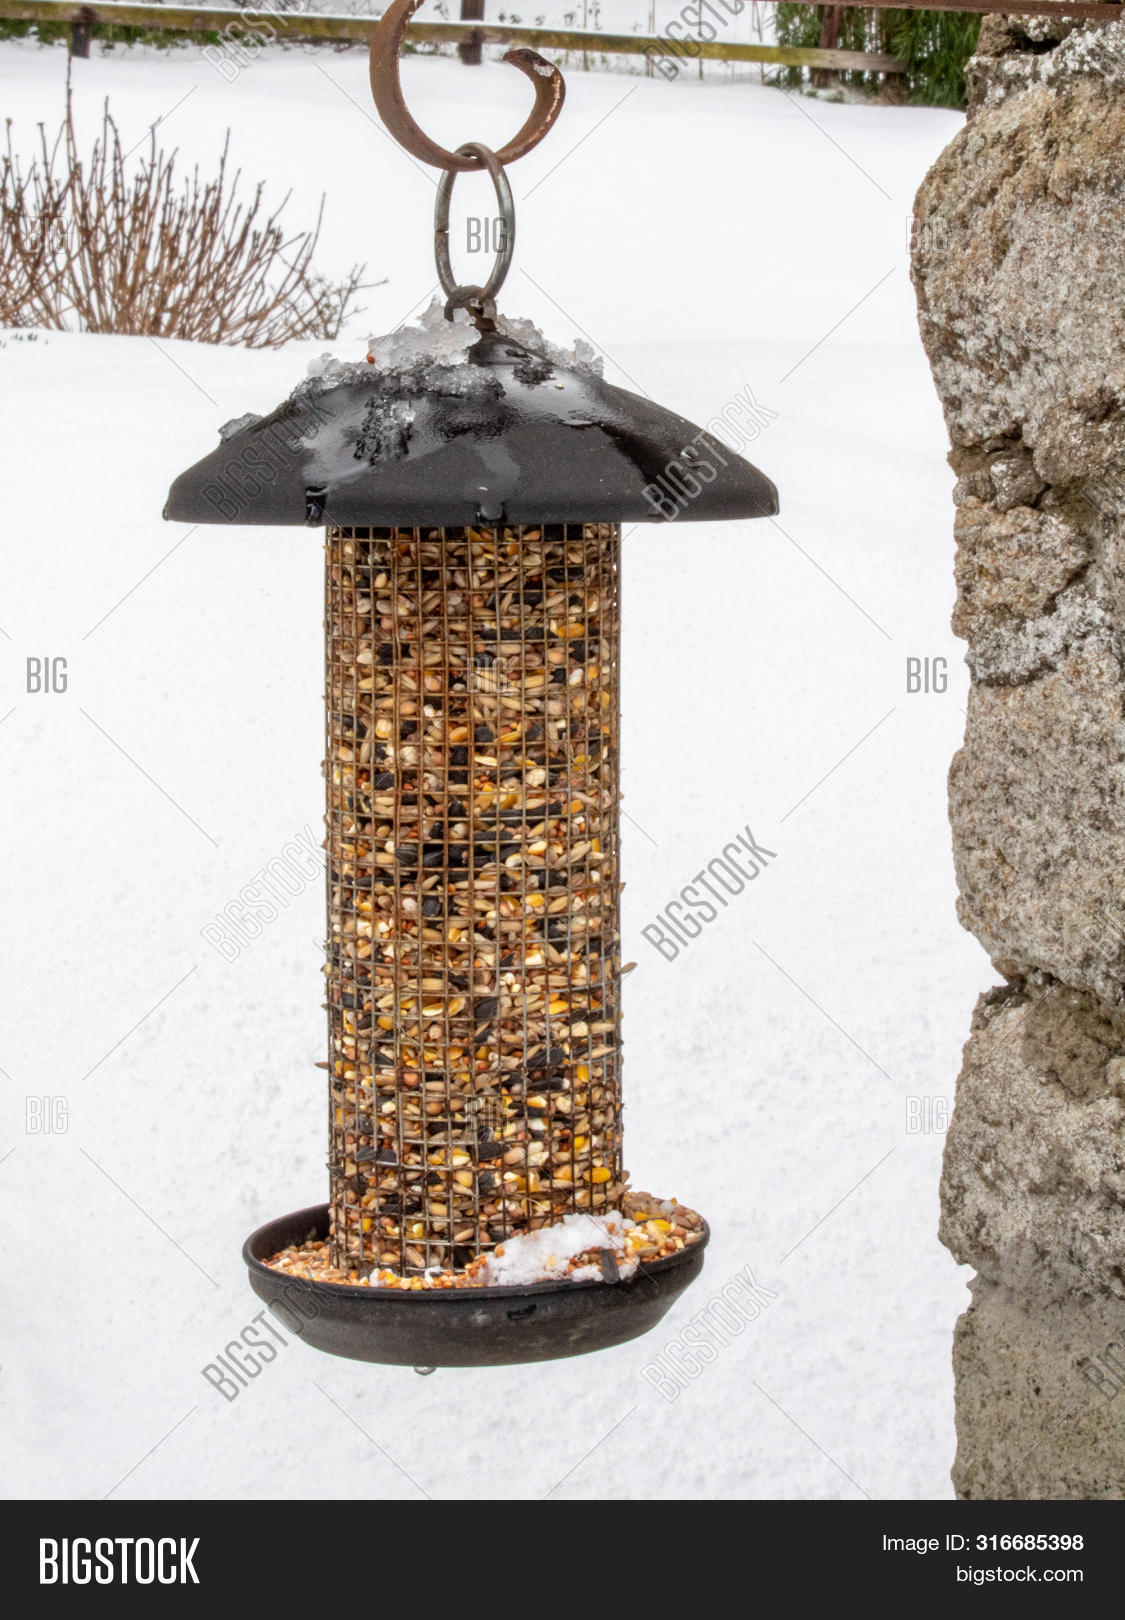 A Bird Feeder Hanging In The Snow